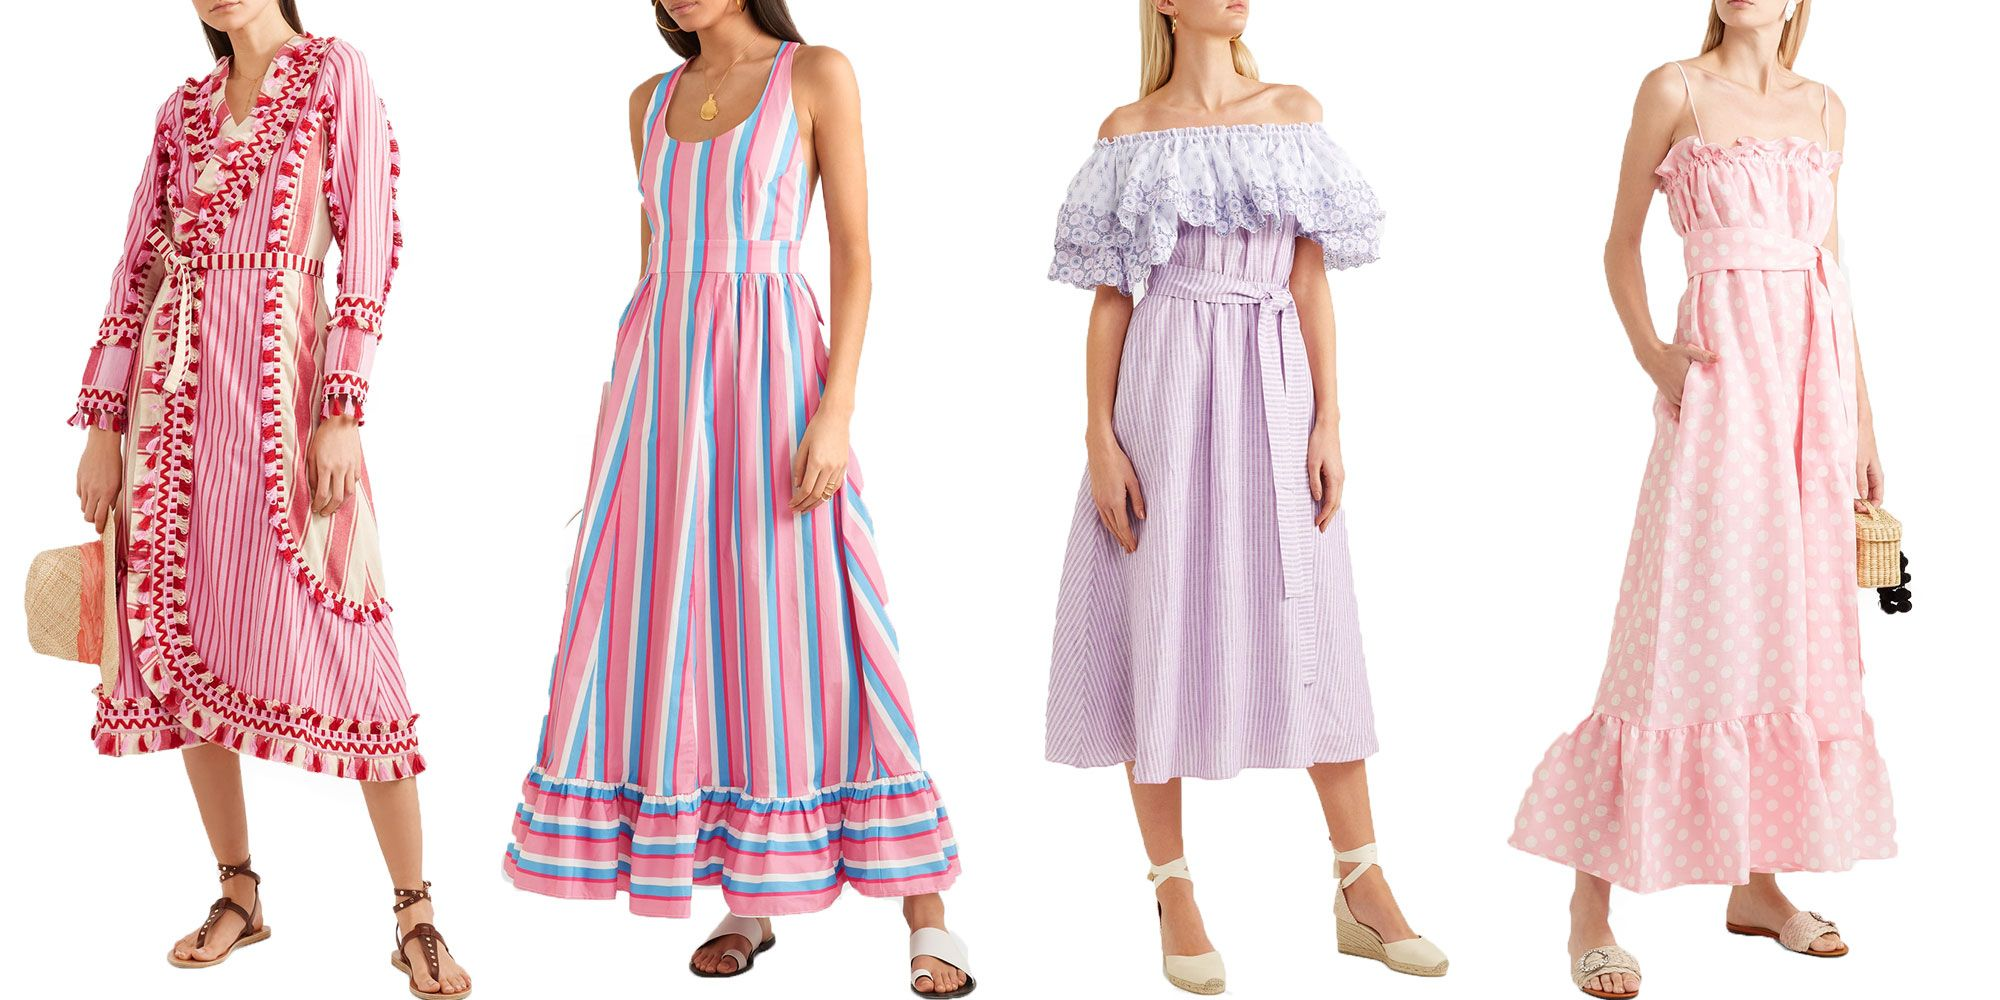 Resort Dresses To Take Your Holiday Wardrobe To The Next Level